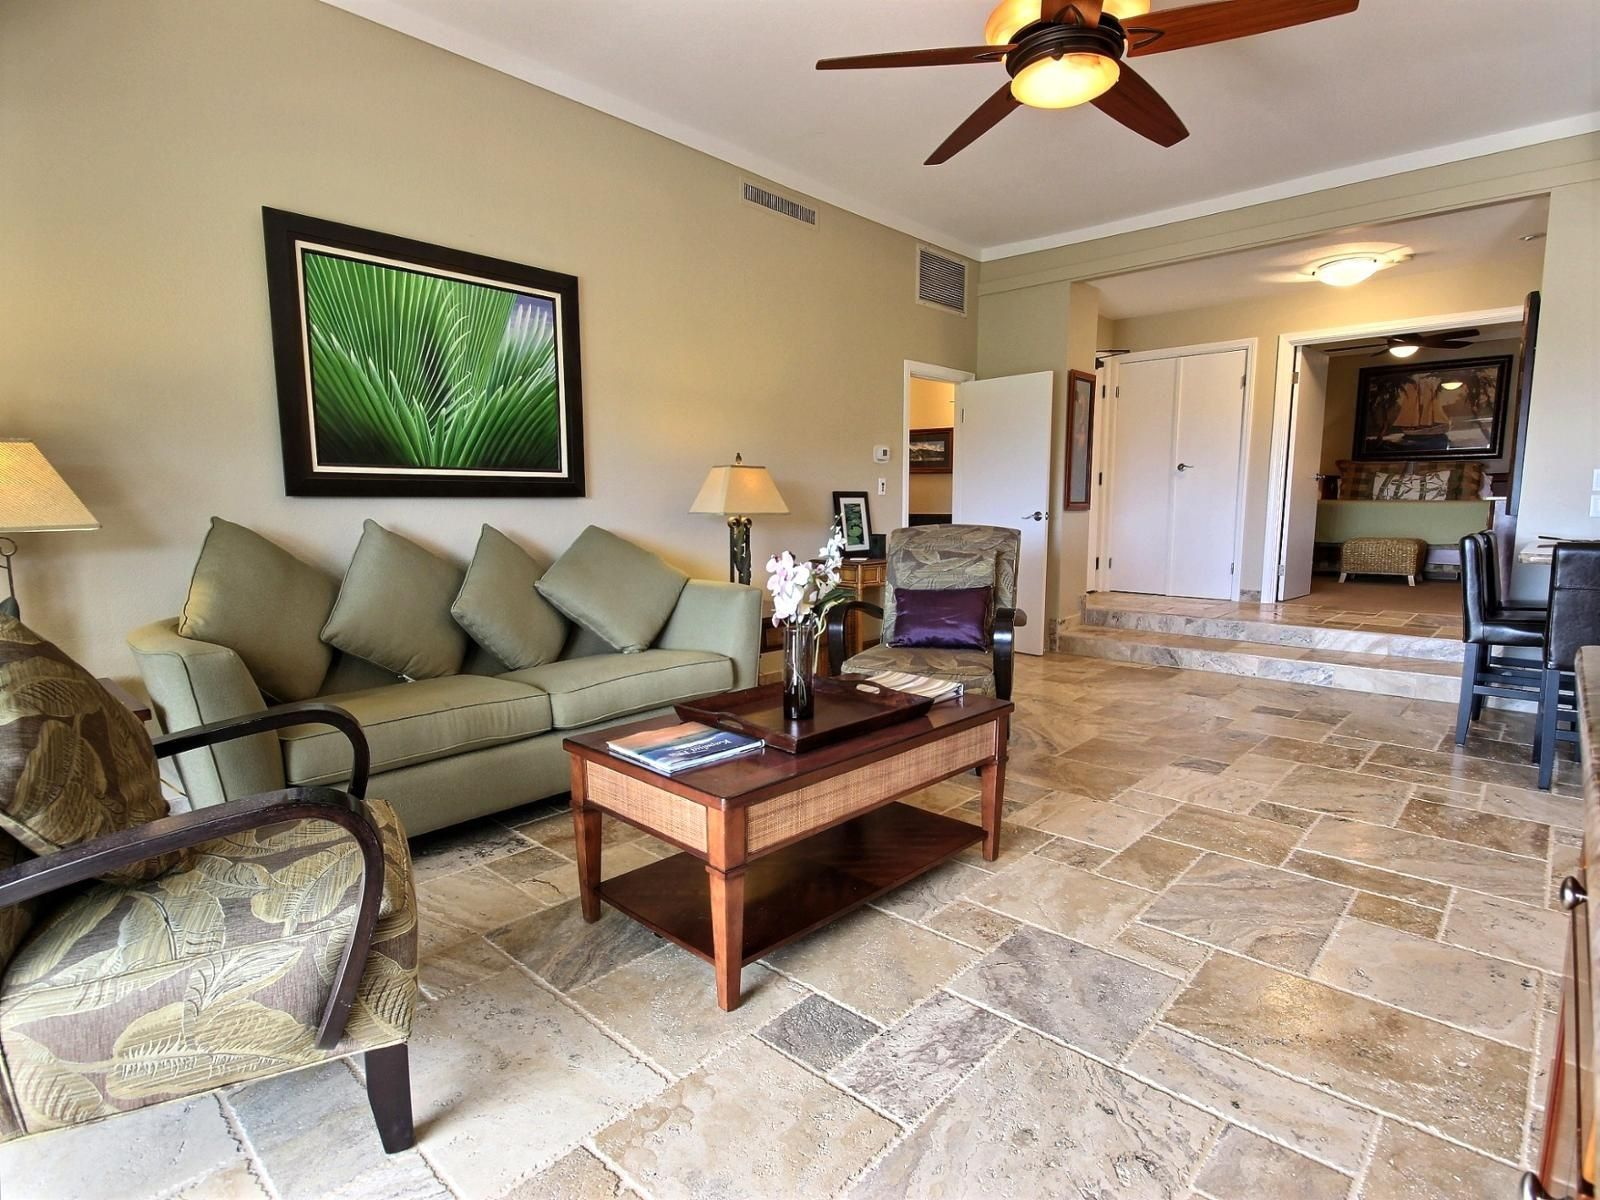 1 tag Traditional Living Room with Ceiling fan, travertine tile floors,  Built-in bookshelf,